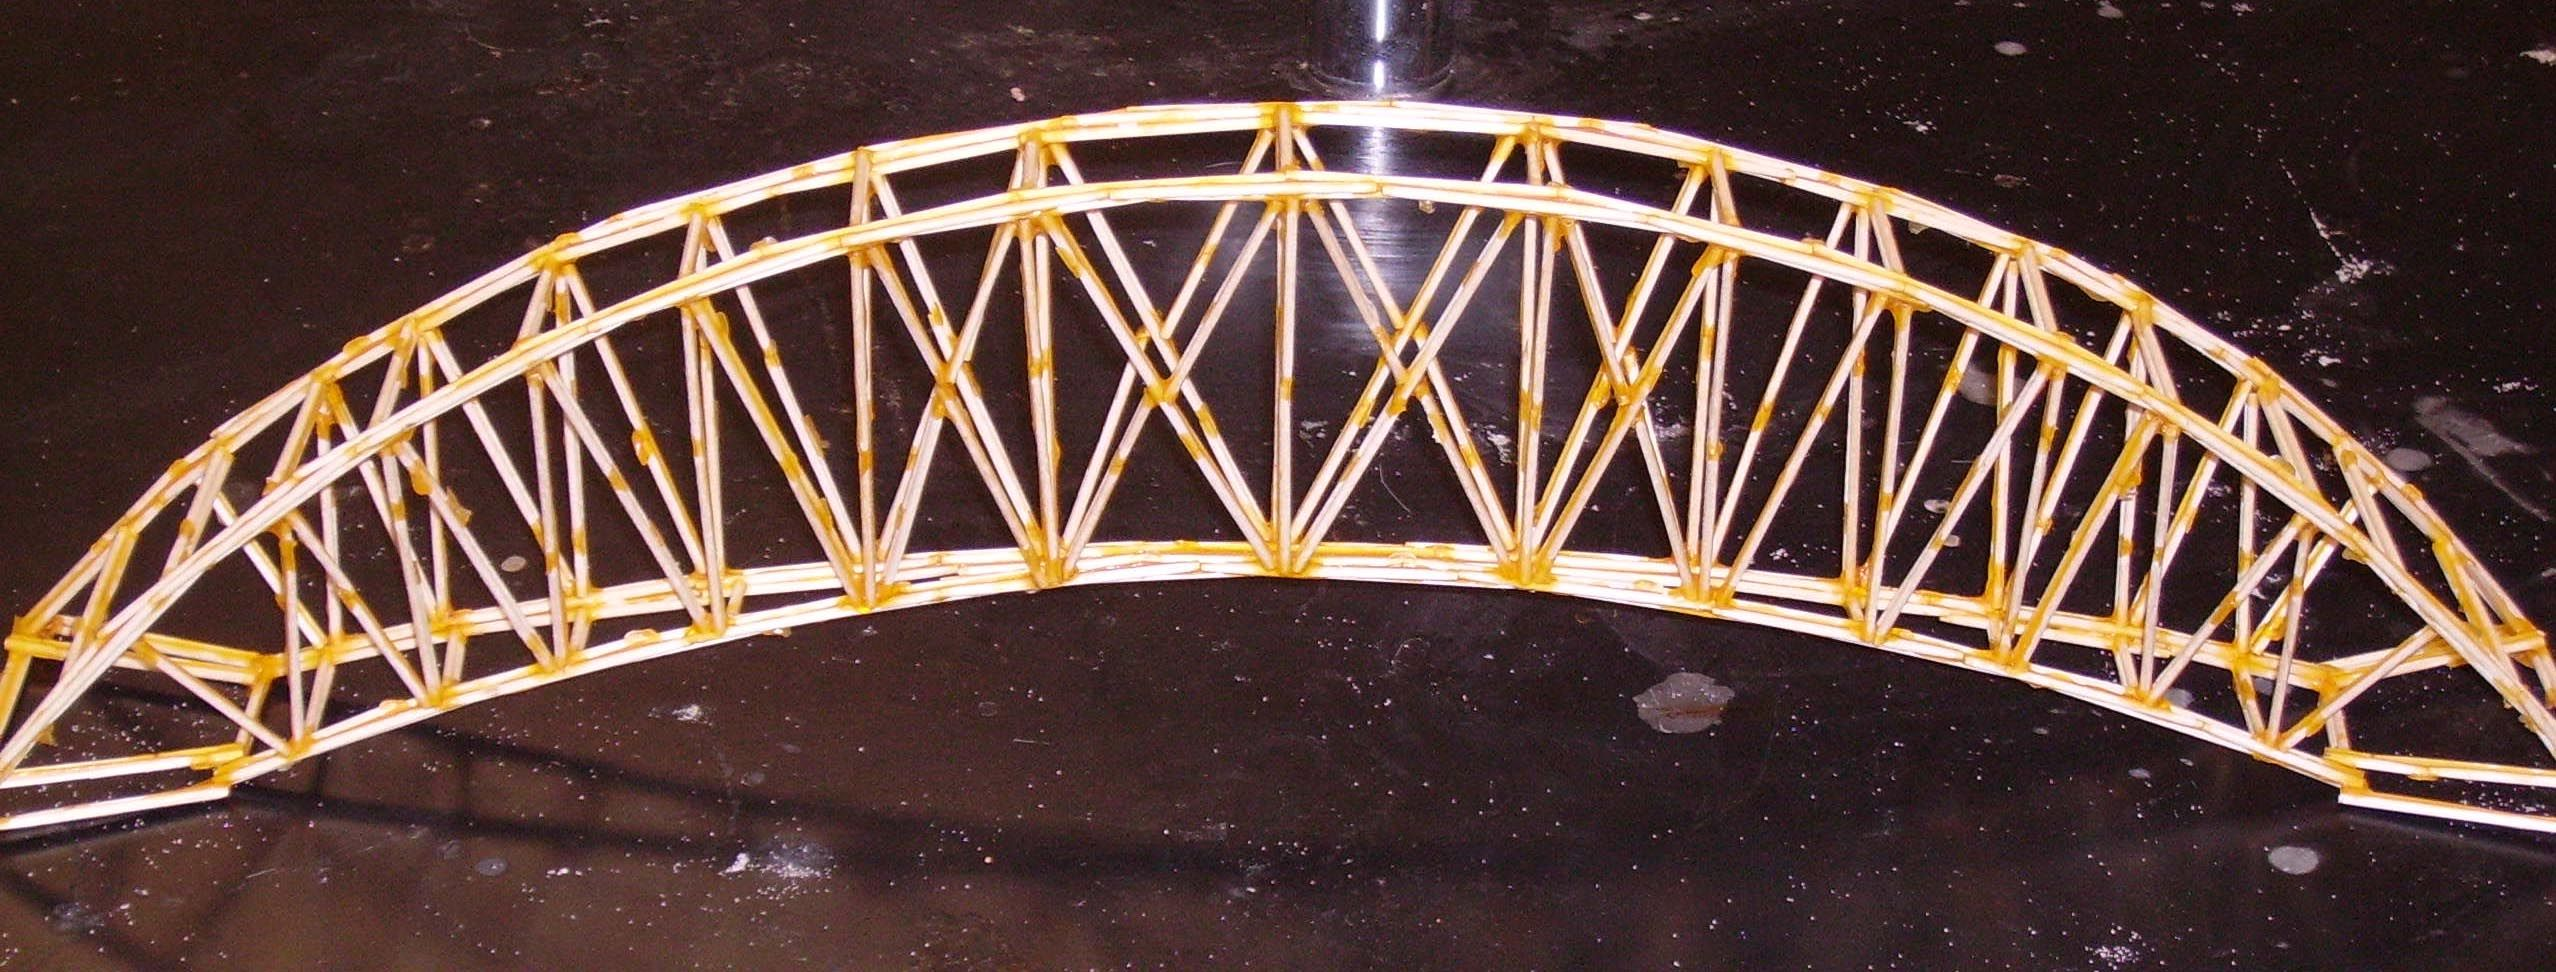 Toothpick Truss Bridge